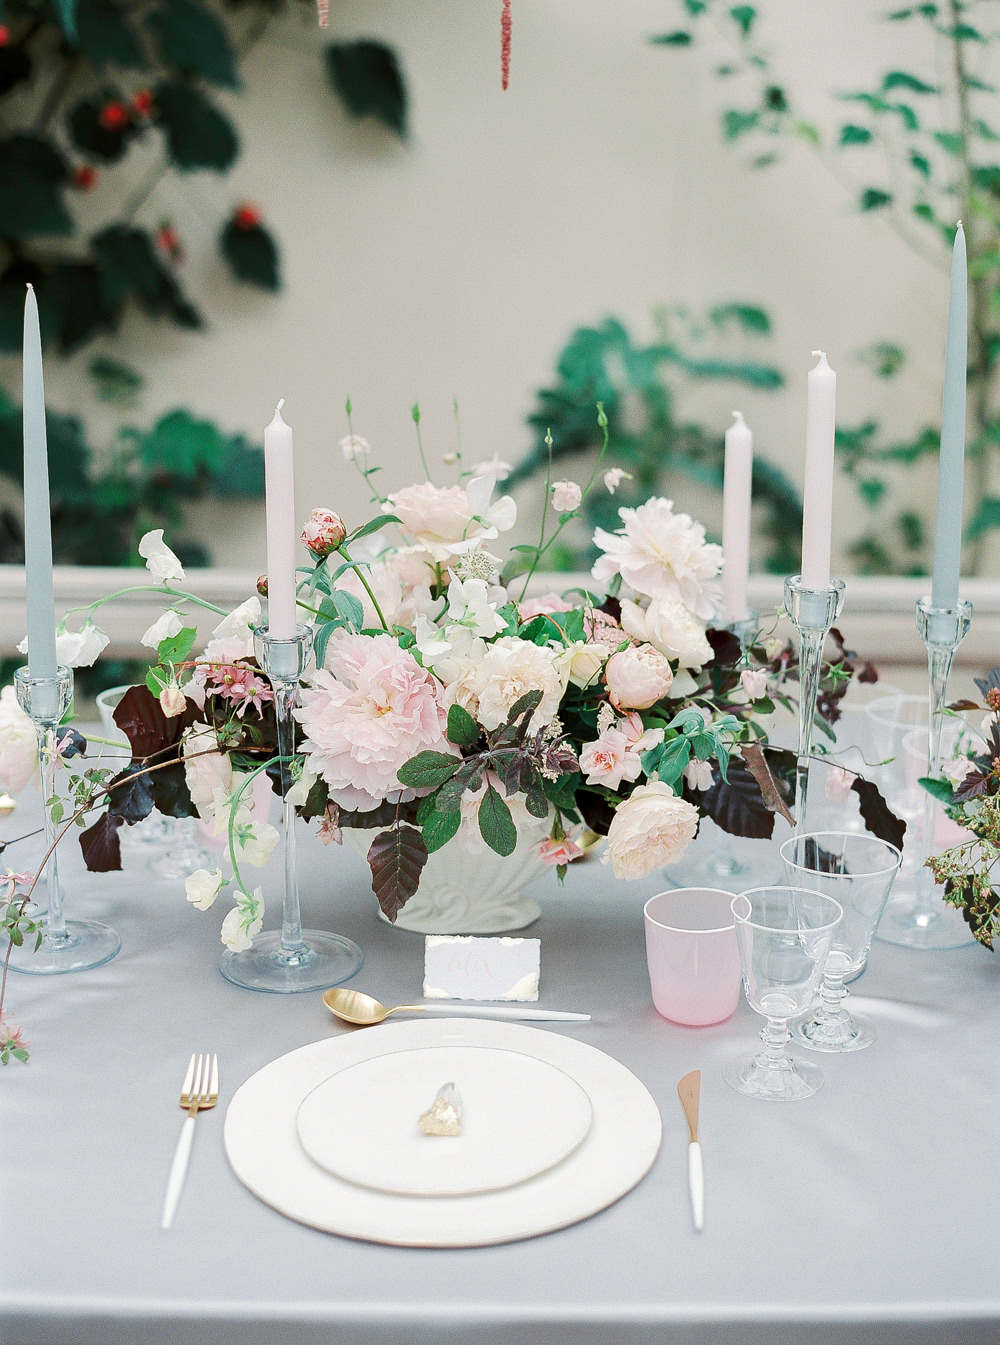 Place setting with floral centrepiece